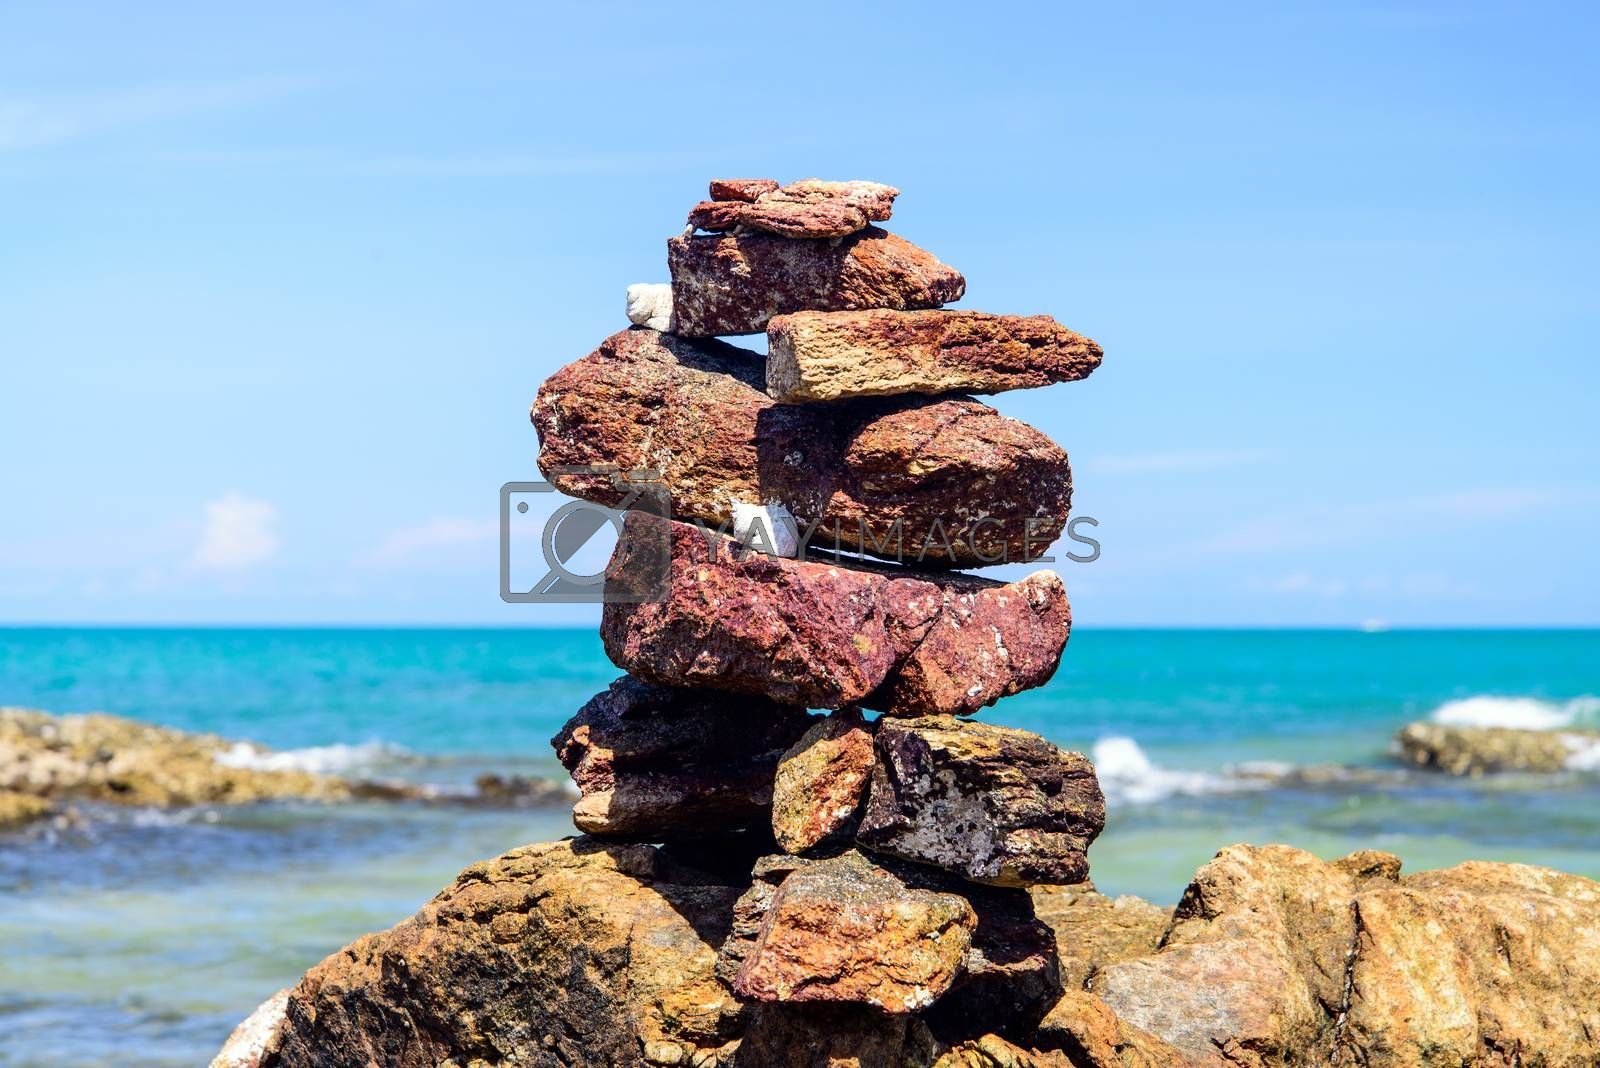 Balancing of pebbles each other on the seacoast  by jakgree